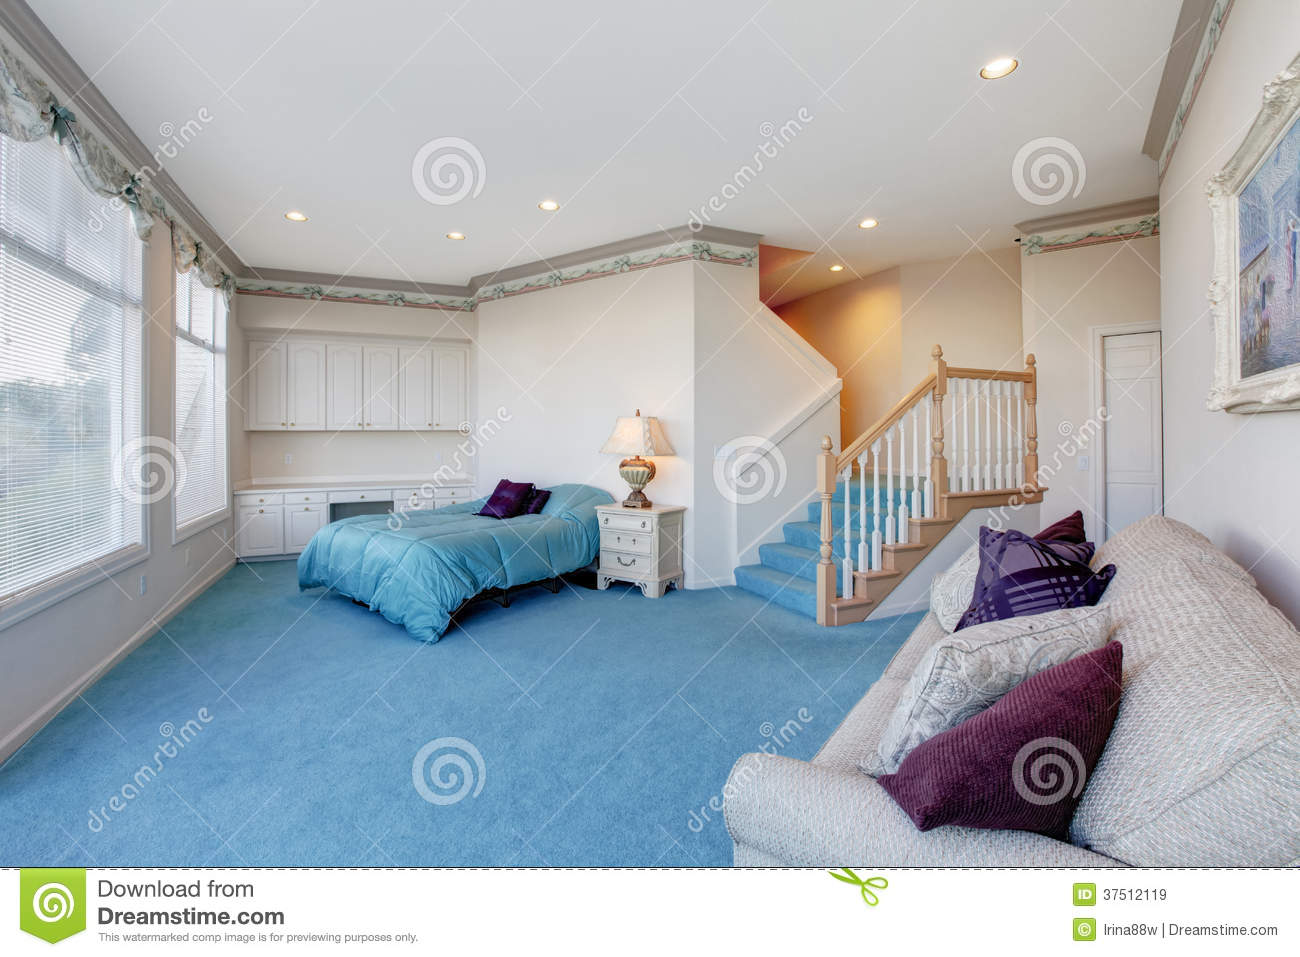 Interesting Floor Plans Amazing Light Blue And White Bedroom With Glass Wall Stock